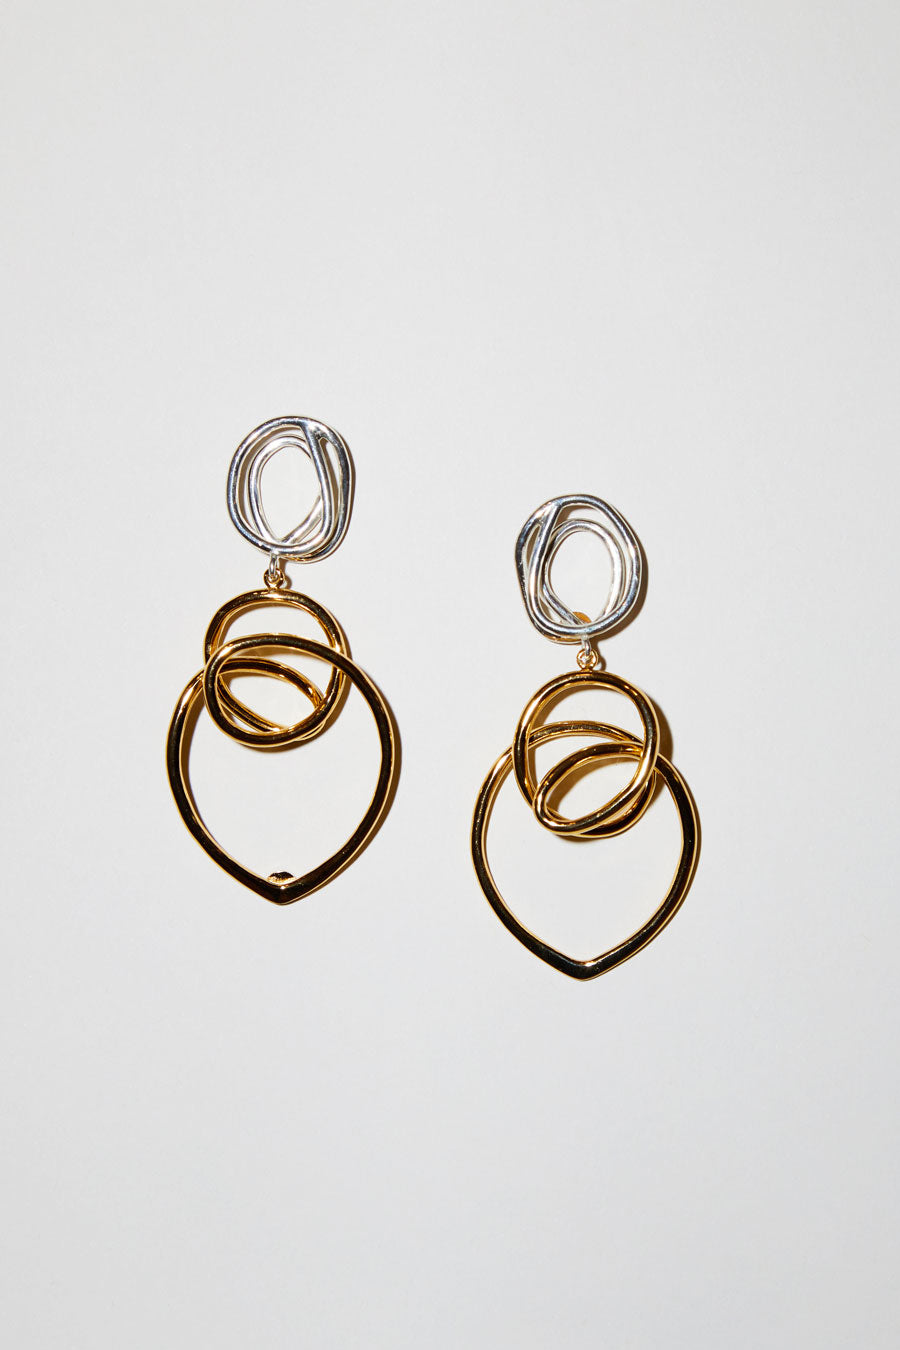 Diana Lecompte Loop Earrings